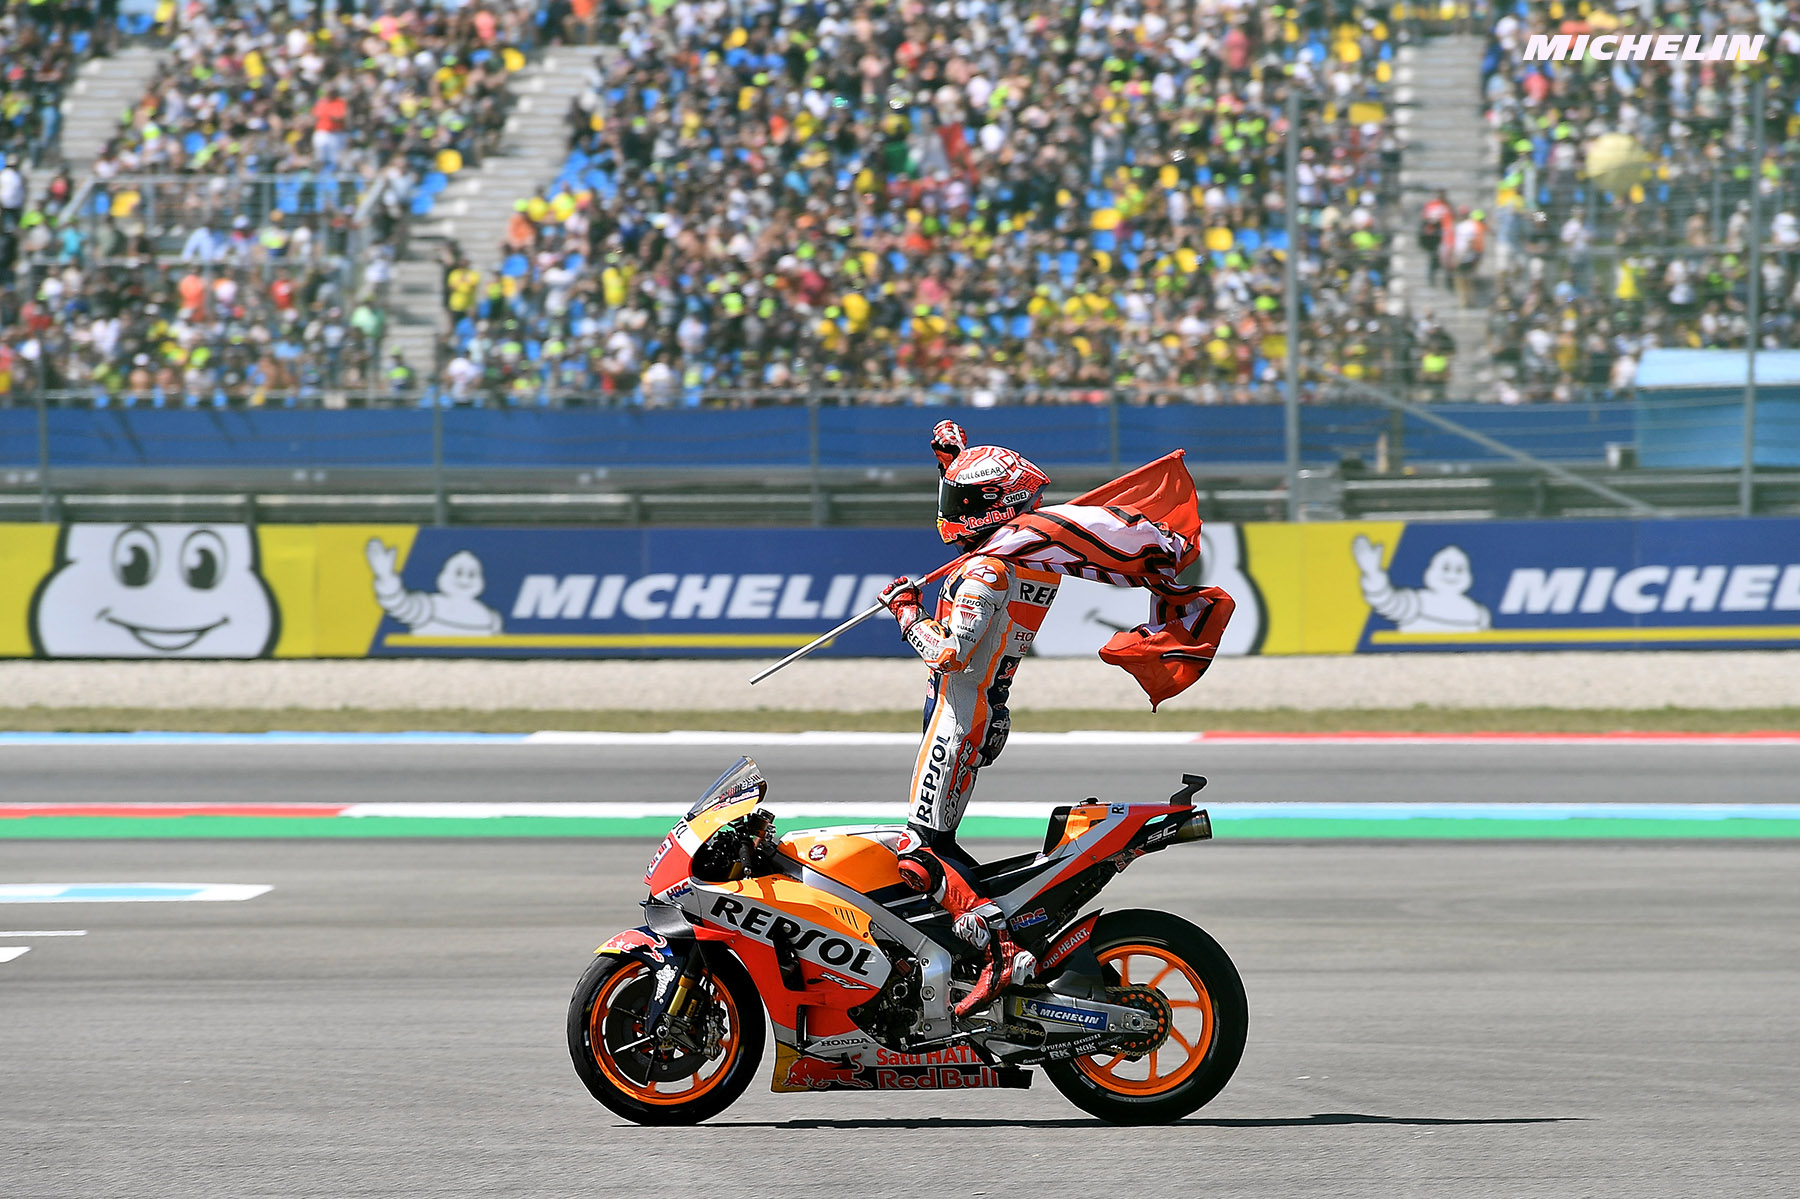 MotoGP™: Marquez and Repsol Honda Team/Michelin win incredible Motul TT Assen